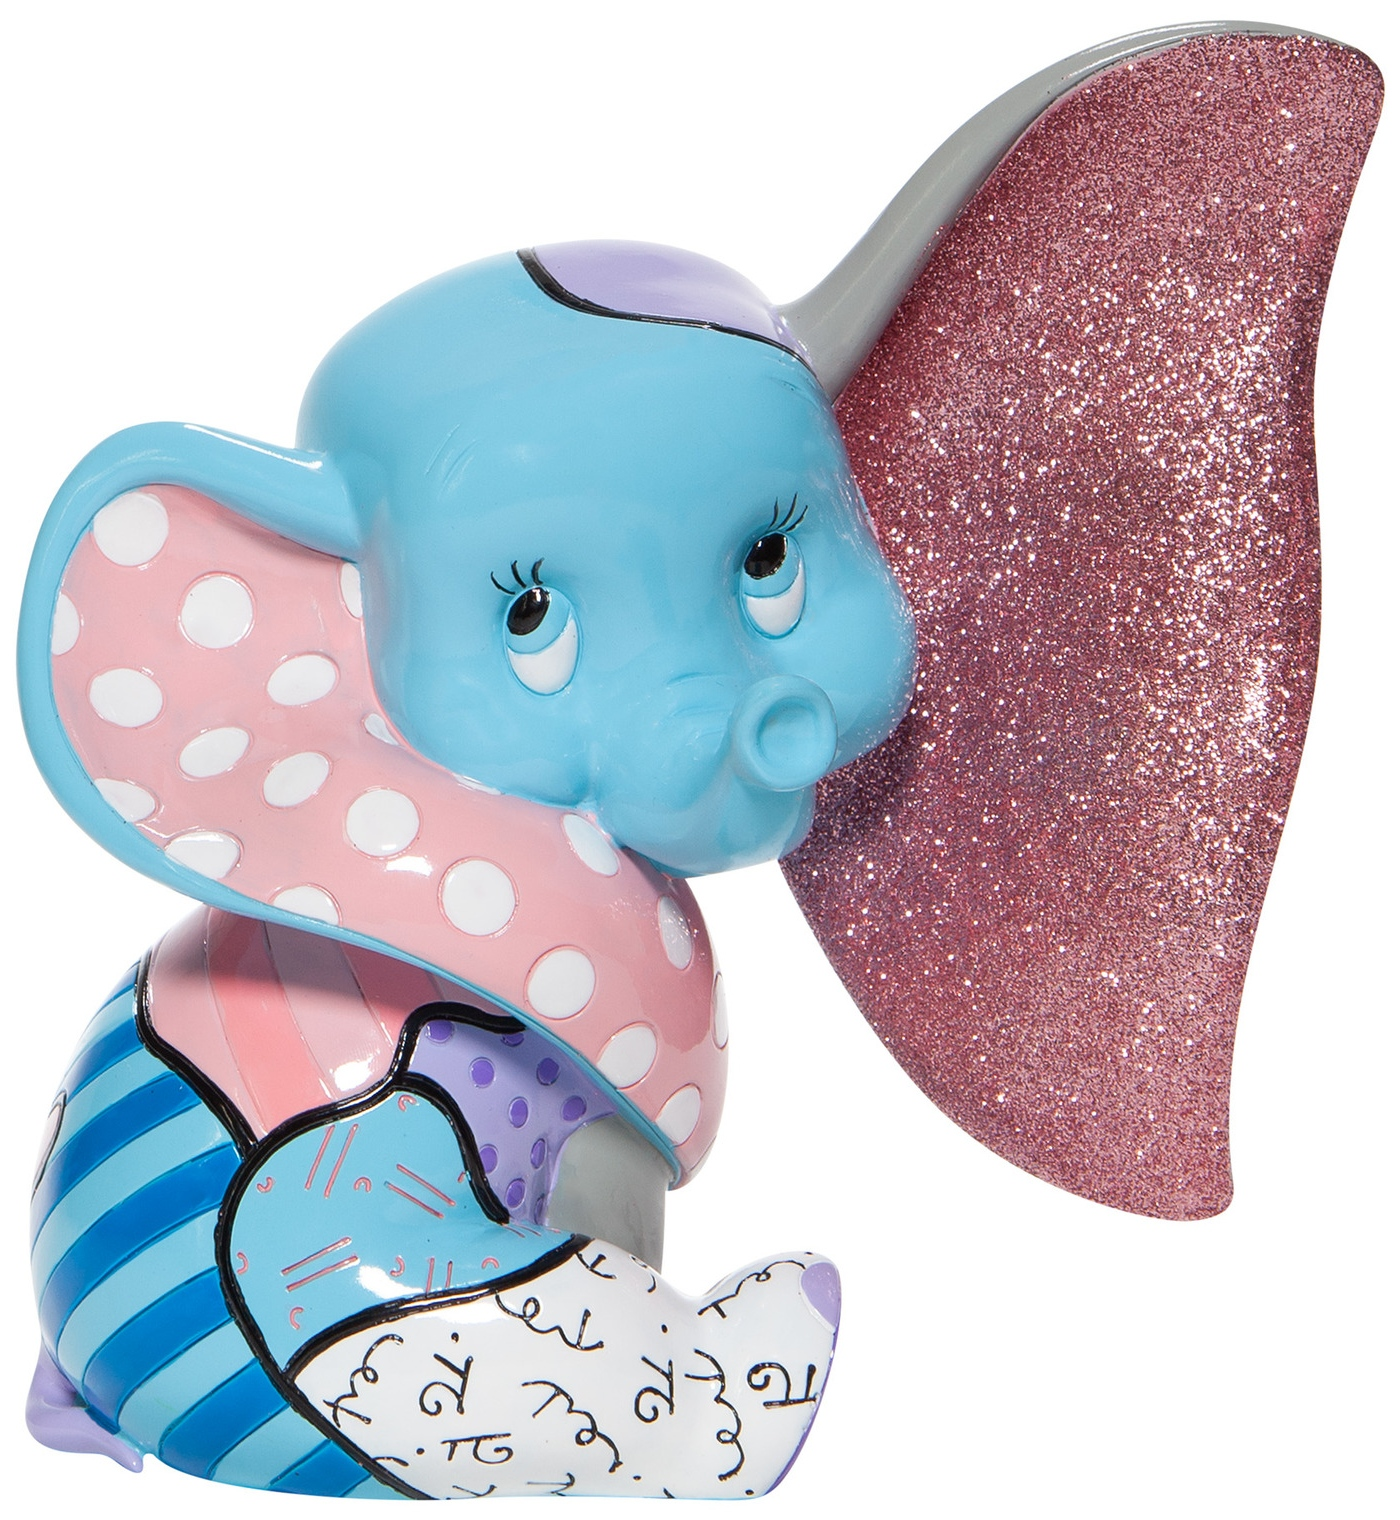 Britto Disney 6007096 Baby Dumbo Figurine